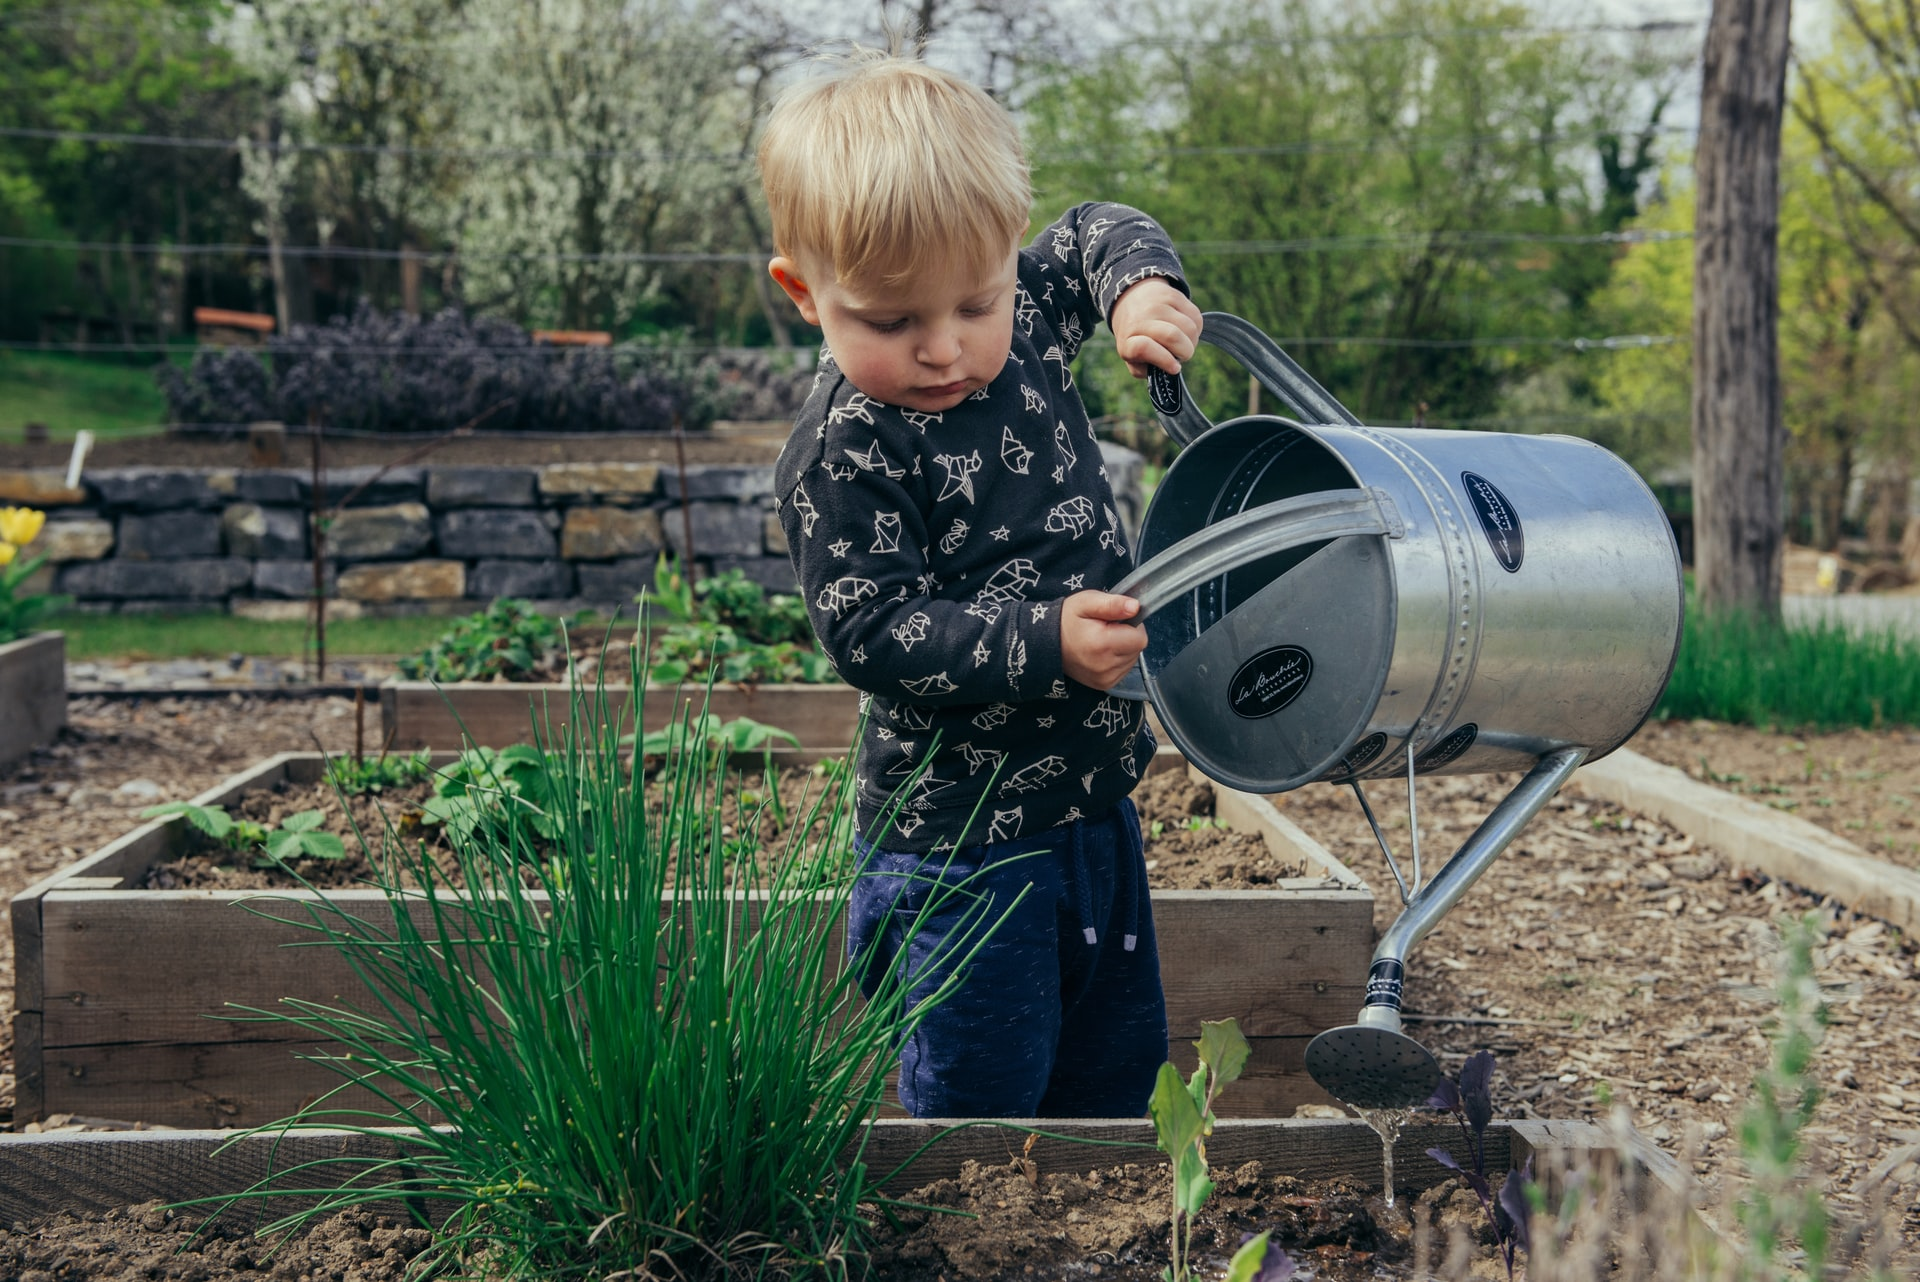 Playsafe playground chip from Composting New Zealand